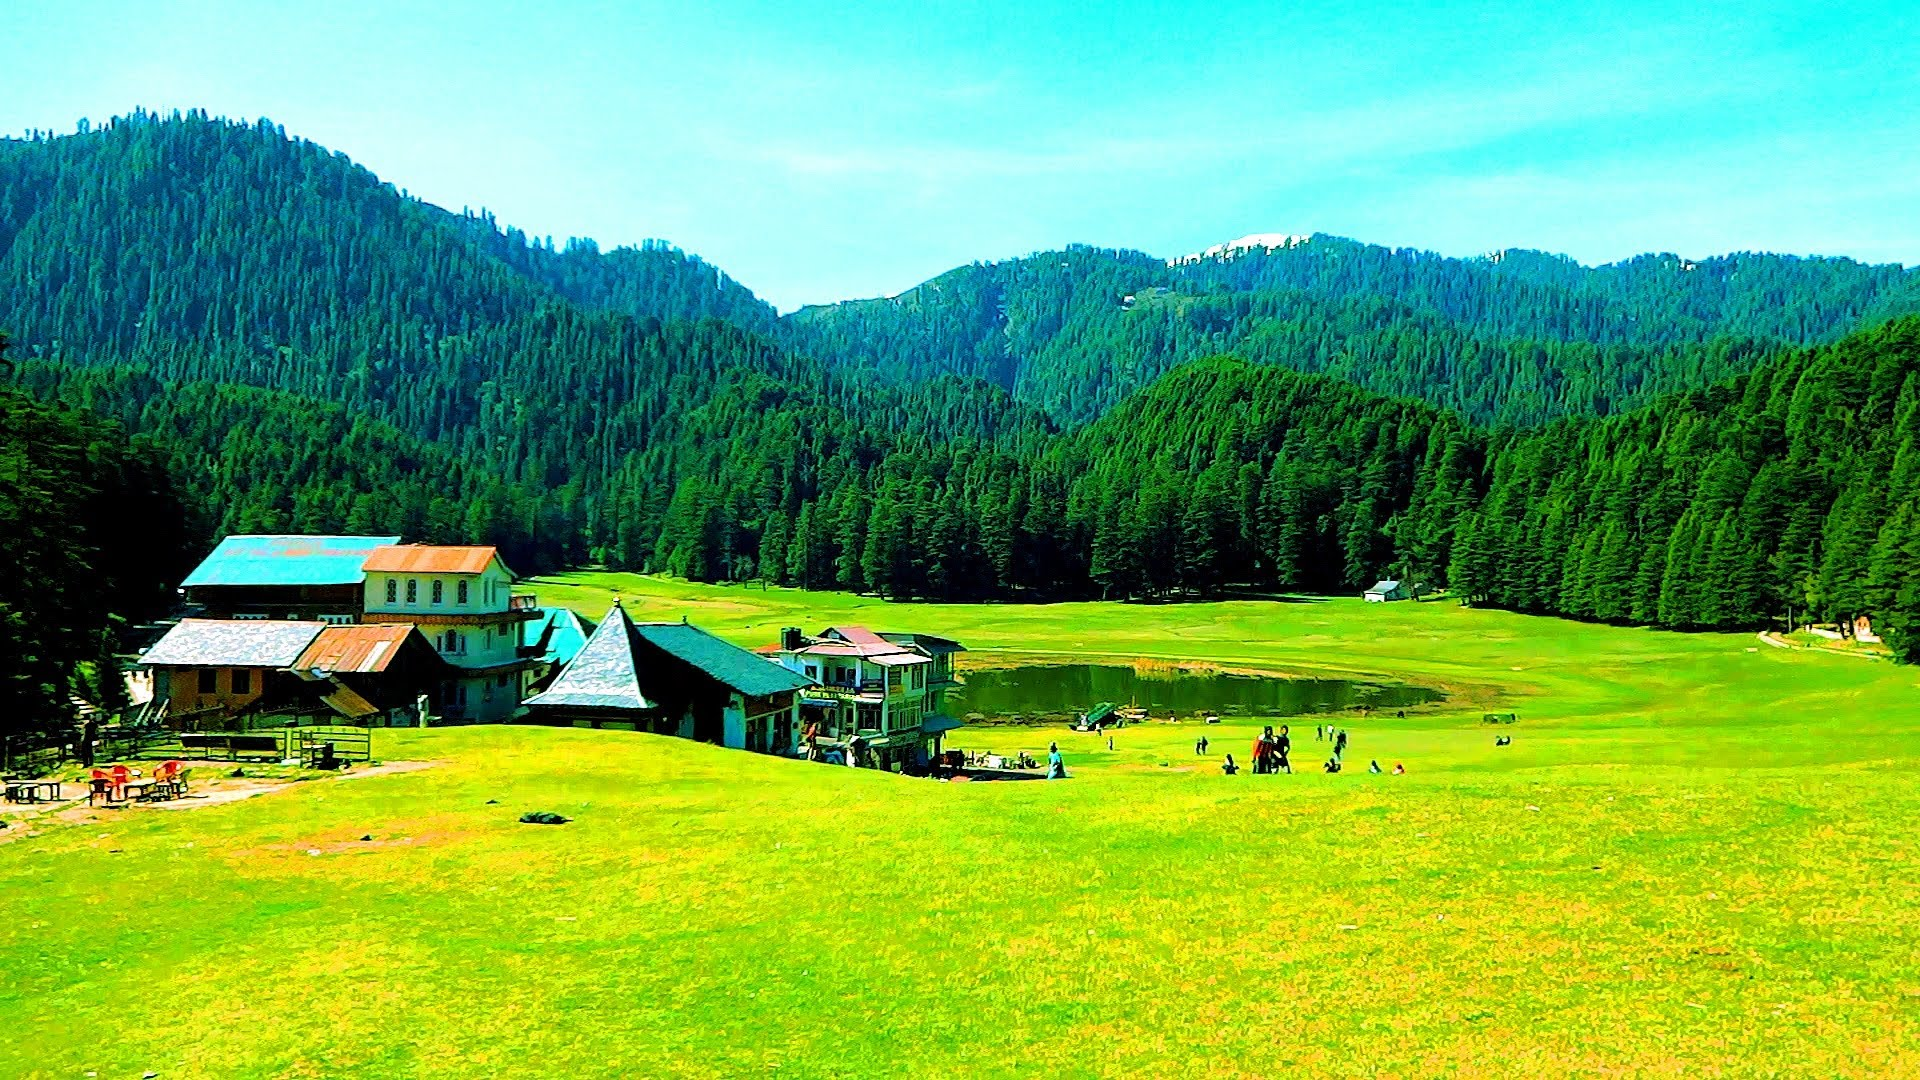 KHAJJIAR Photos Images And Wallpapers